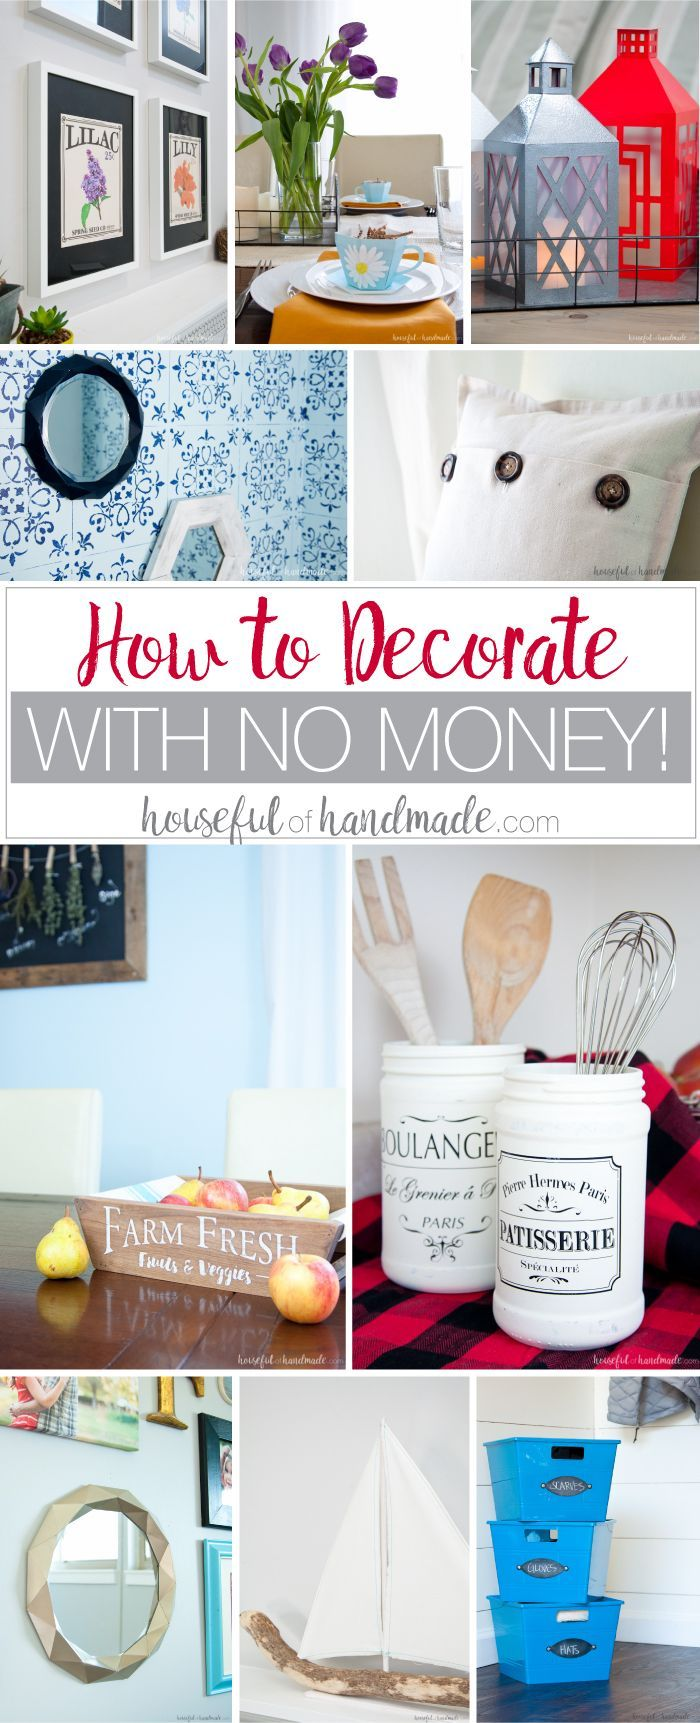 How to Decorate with No Money #decoratehome